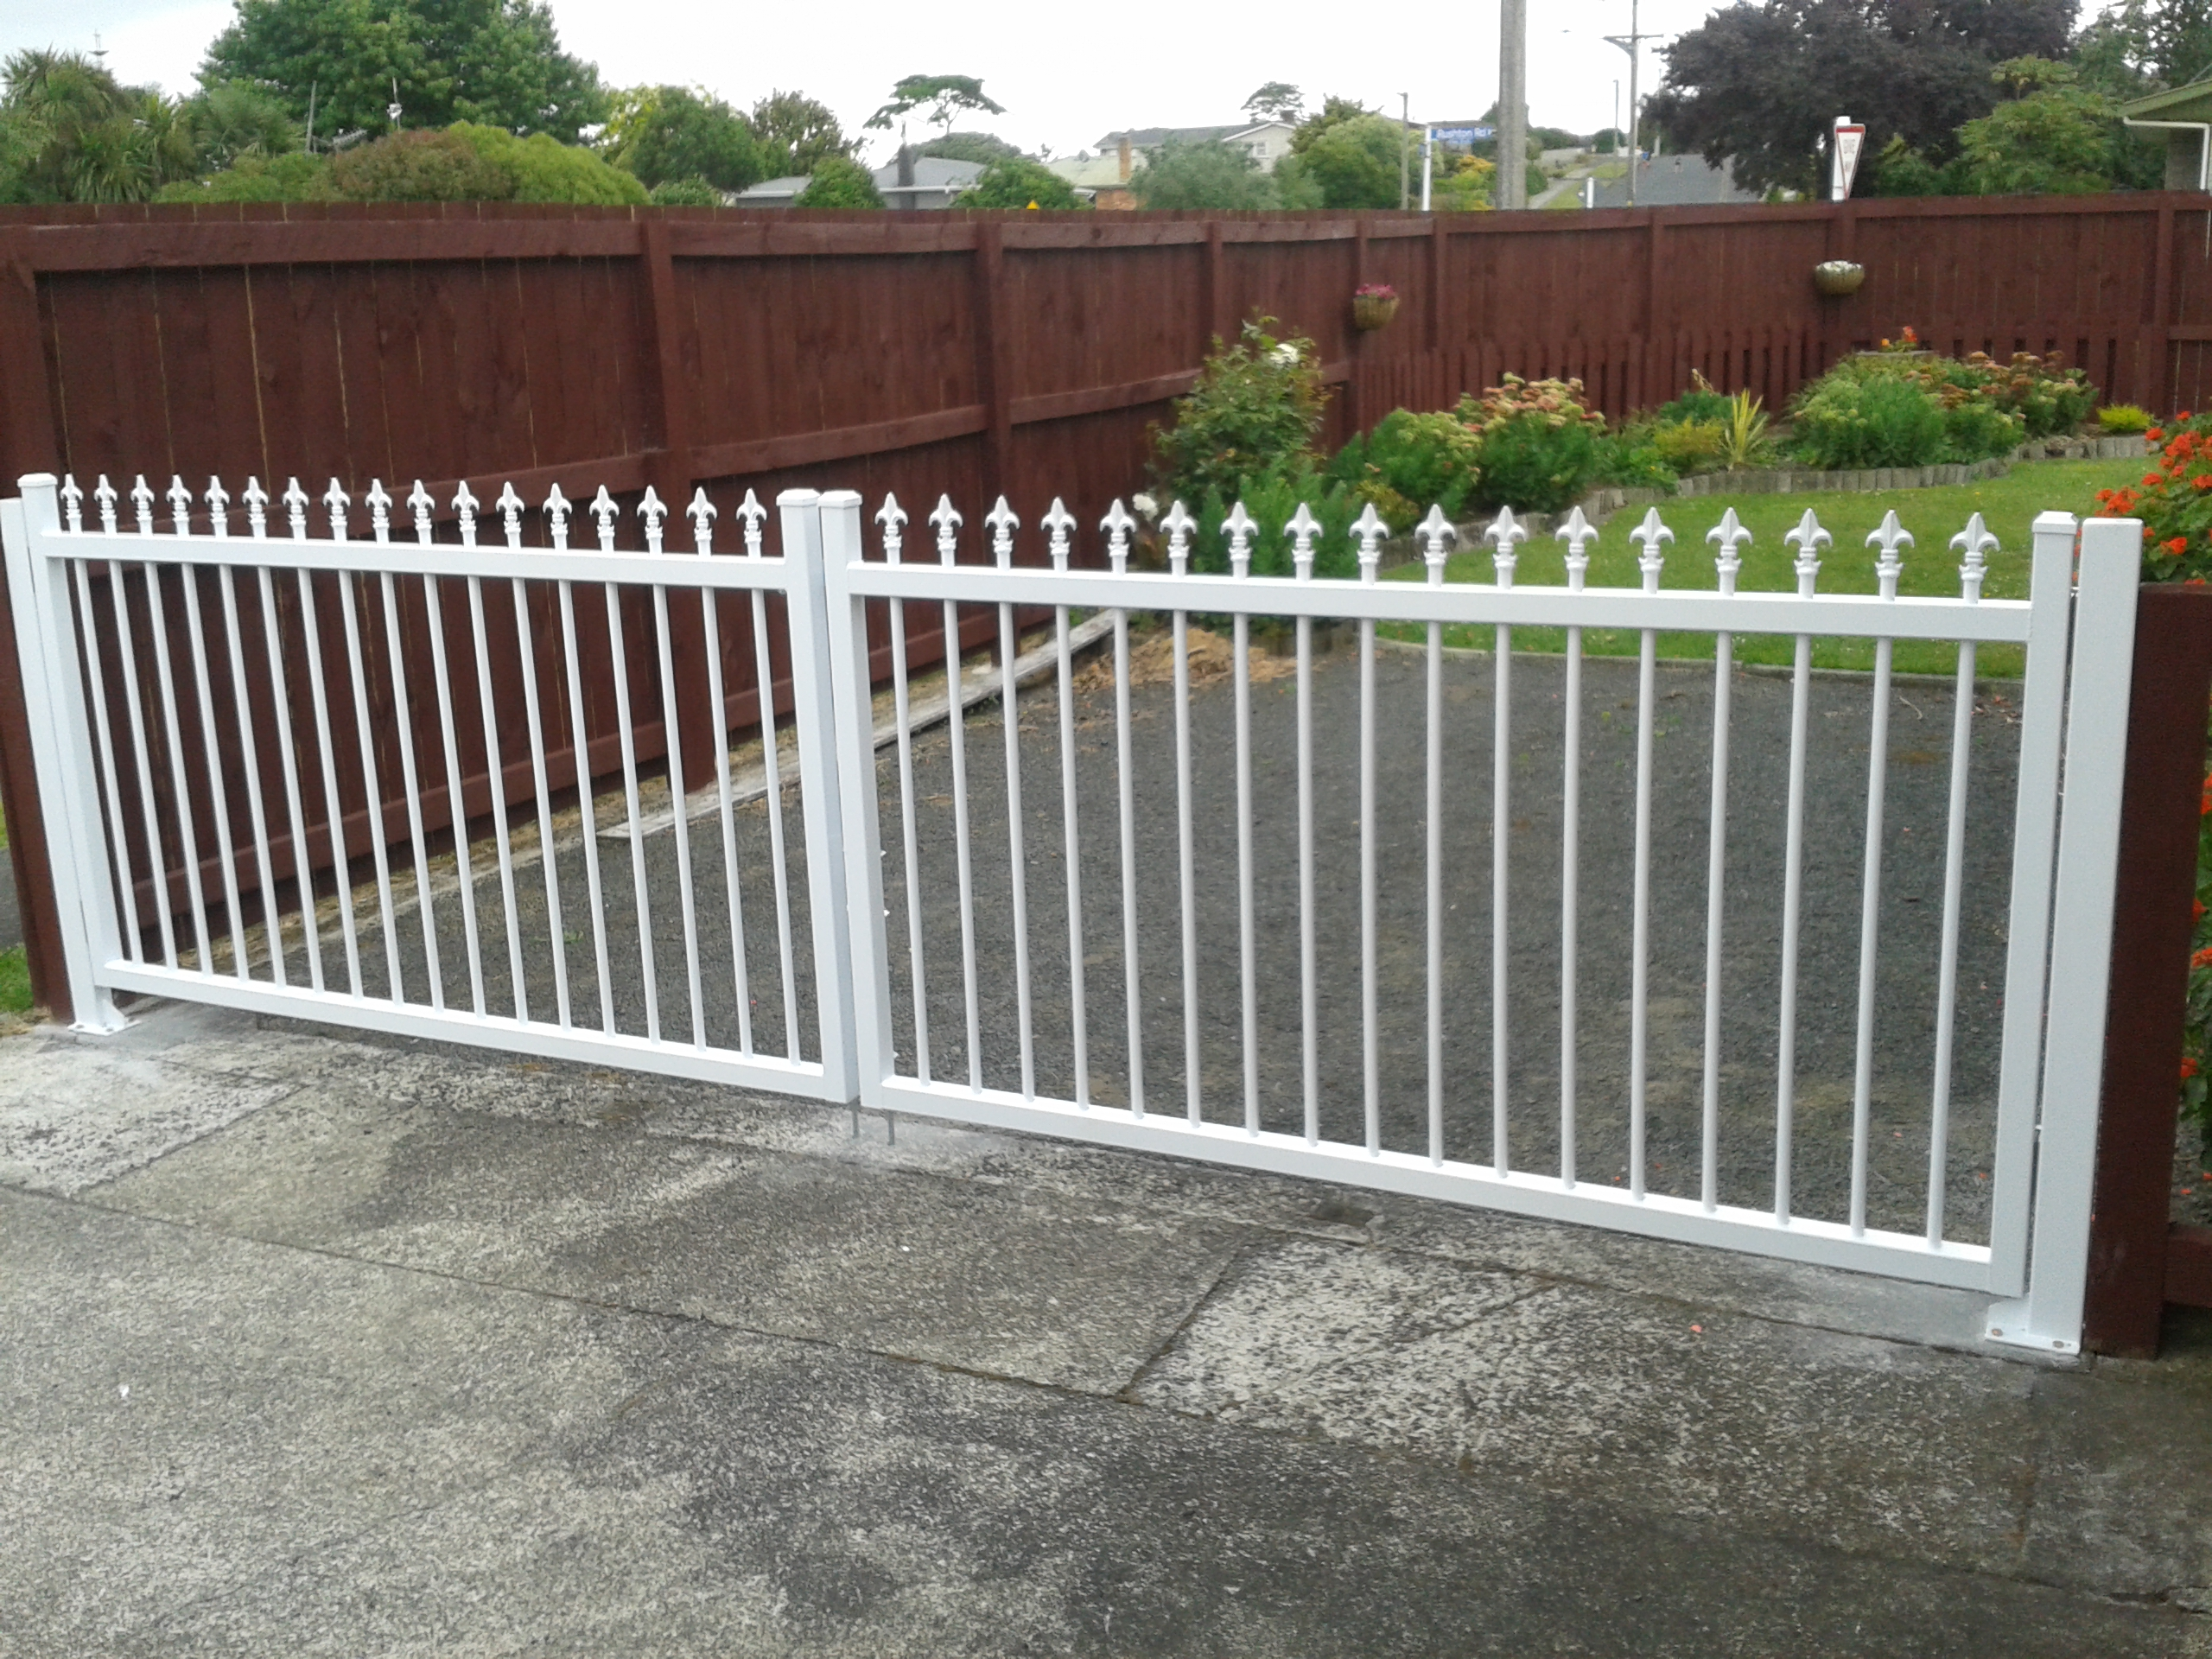 CDM5 Double swing gates